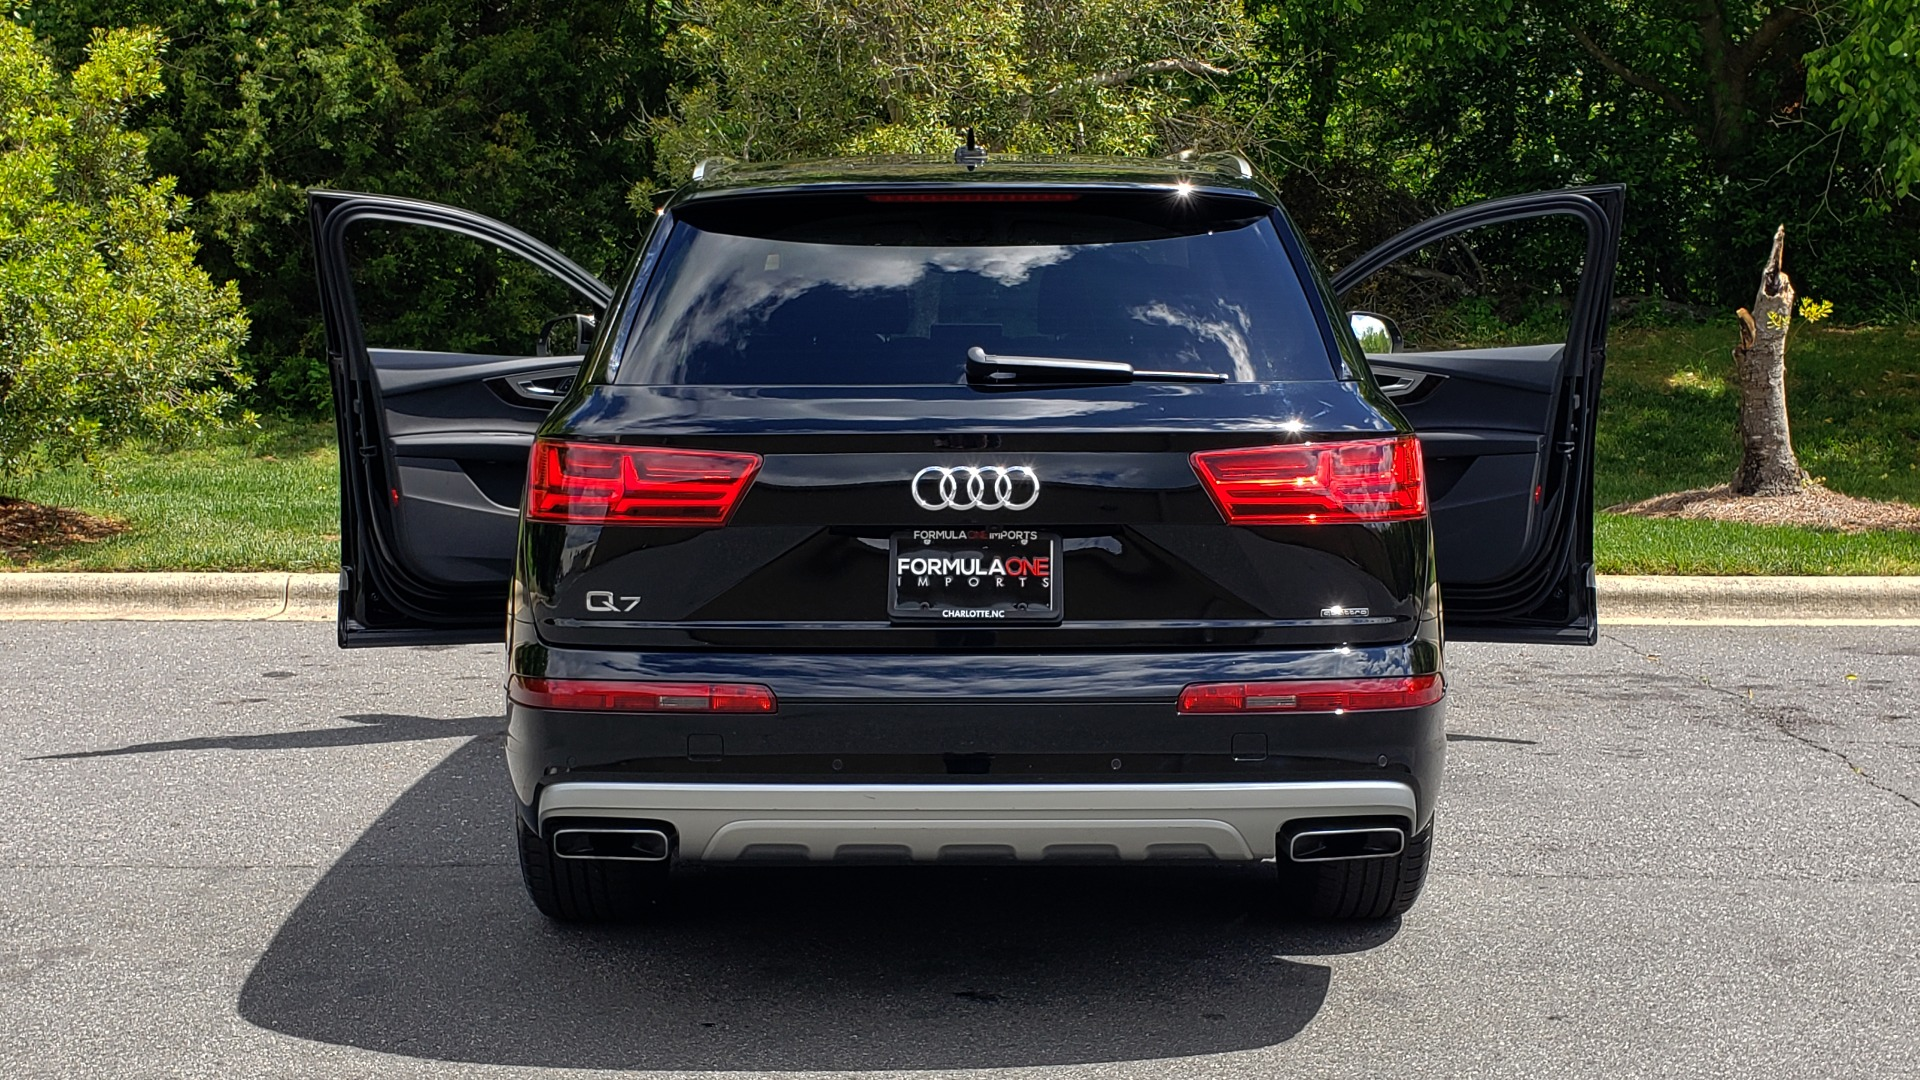 Used 2017 Audi Q7 PREMIUM PLUS / VISION PKG / NAV / PANO-ROOF / 3-ROW / REARVIEW for sale Sold at Formula Imports in Charlotte NC 28227 27